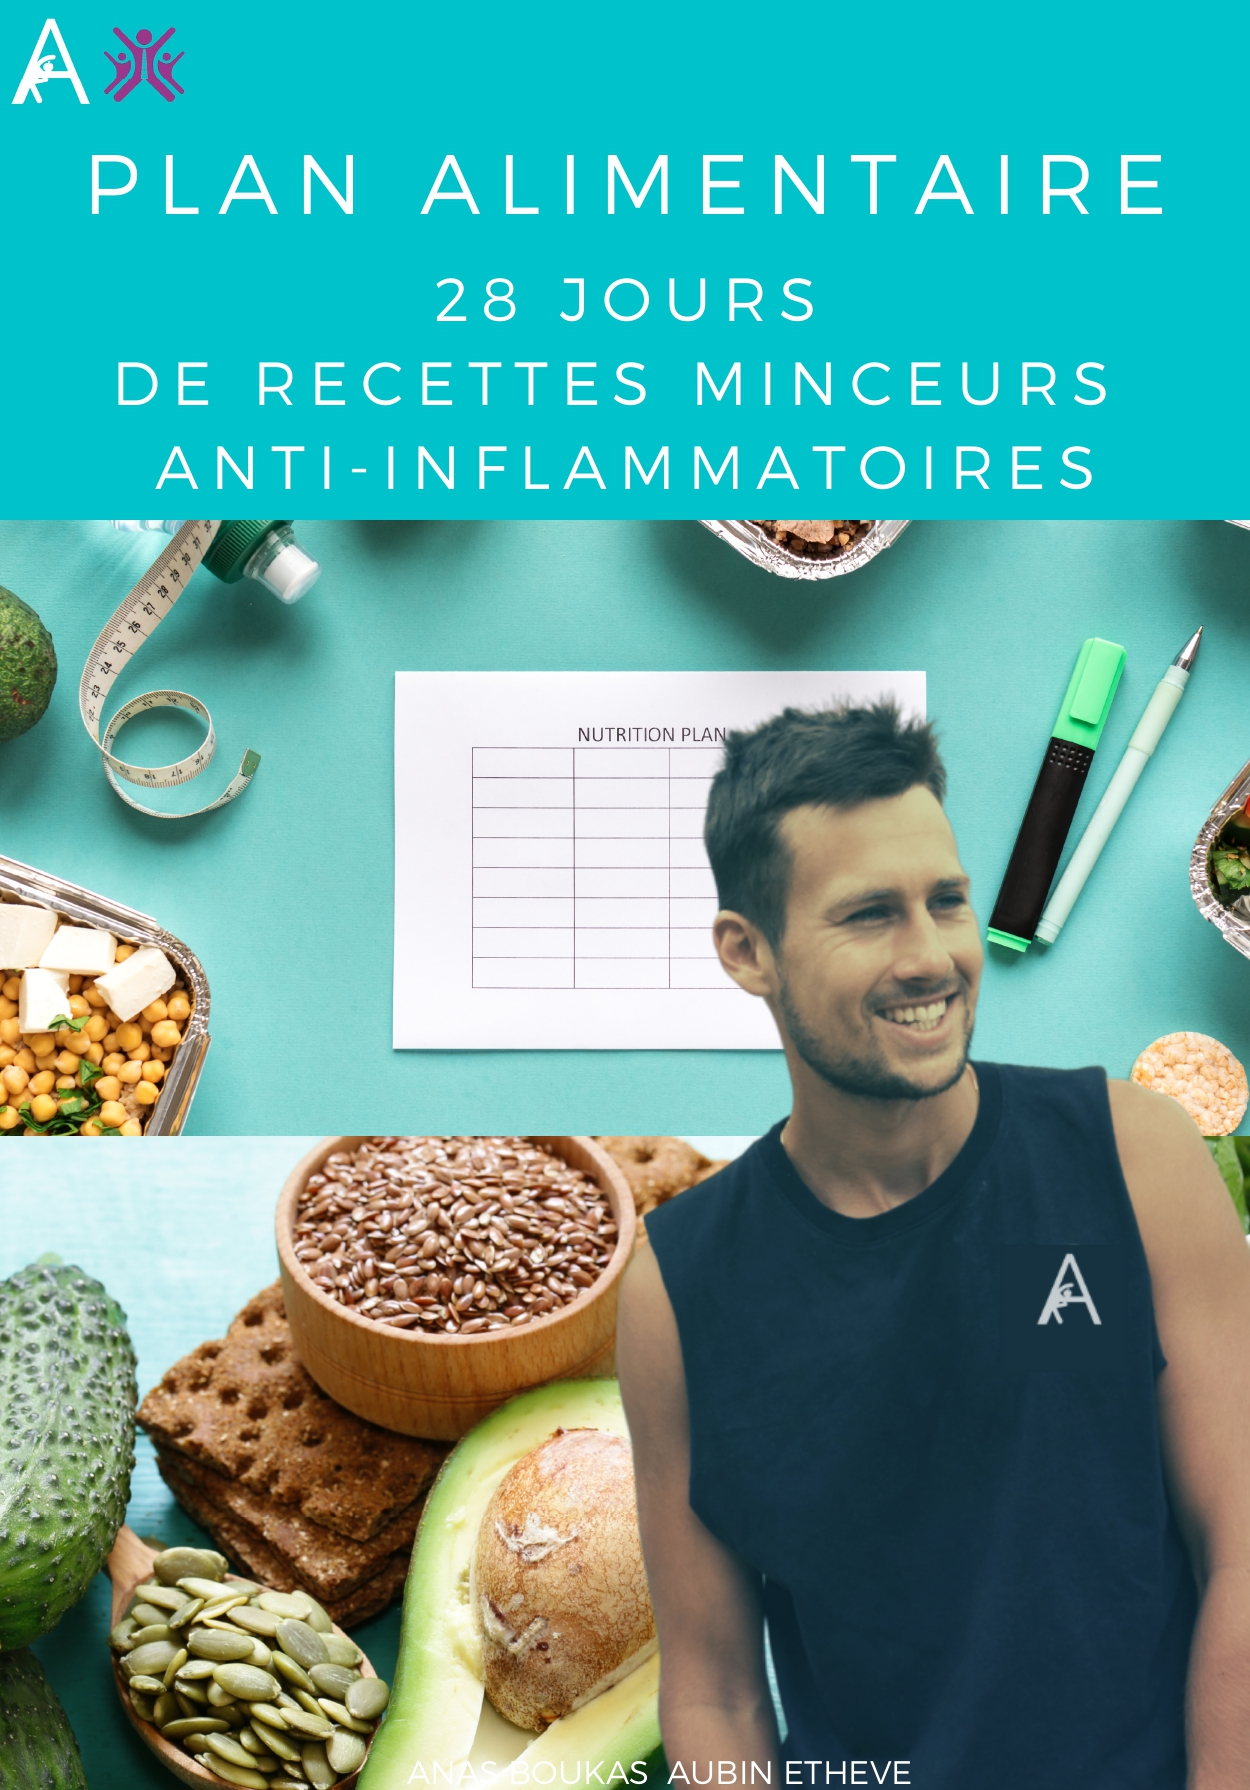 programme alimentaire 28 jours